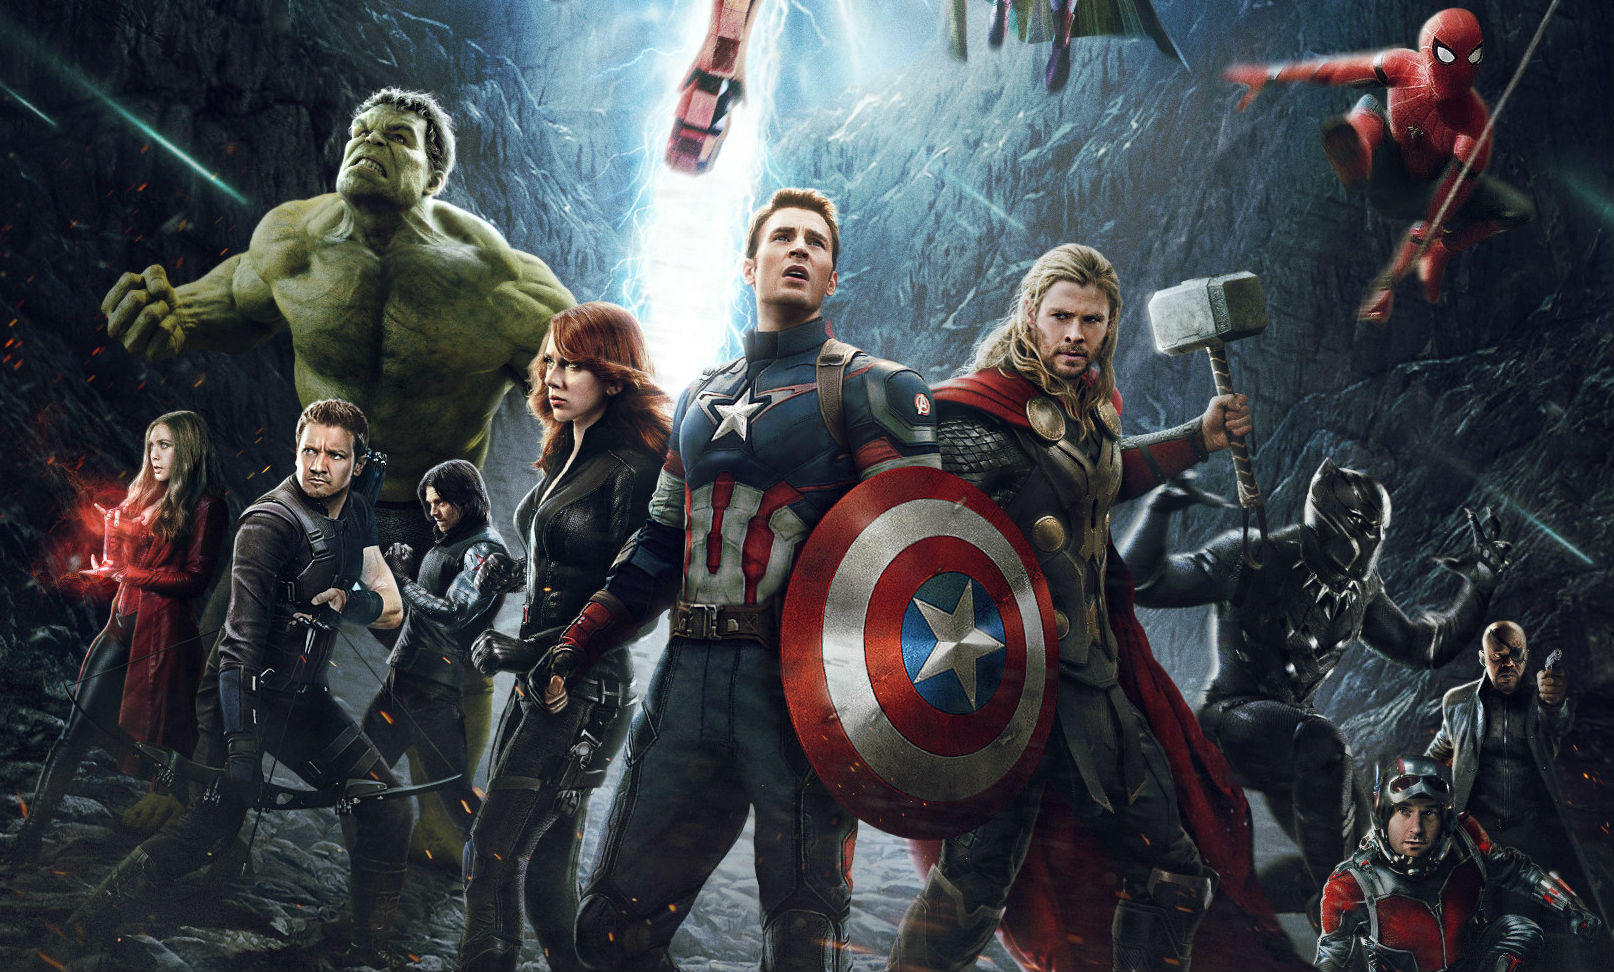 The Epic Avengers Infinity Wars Trailer Is Finally Here